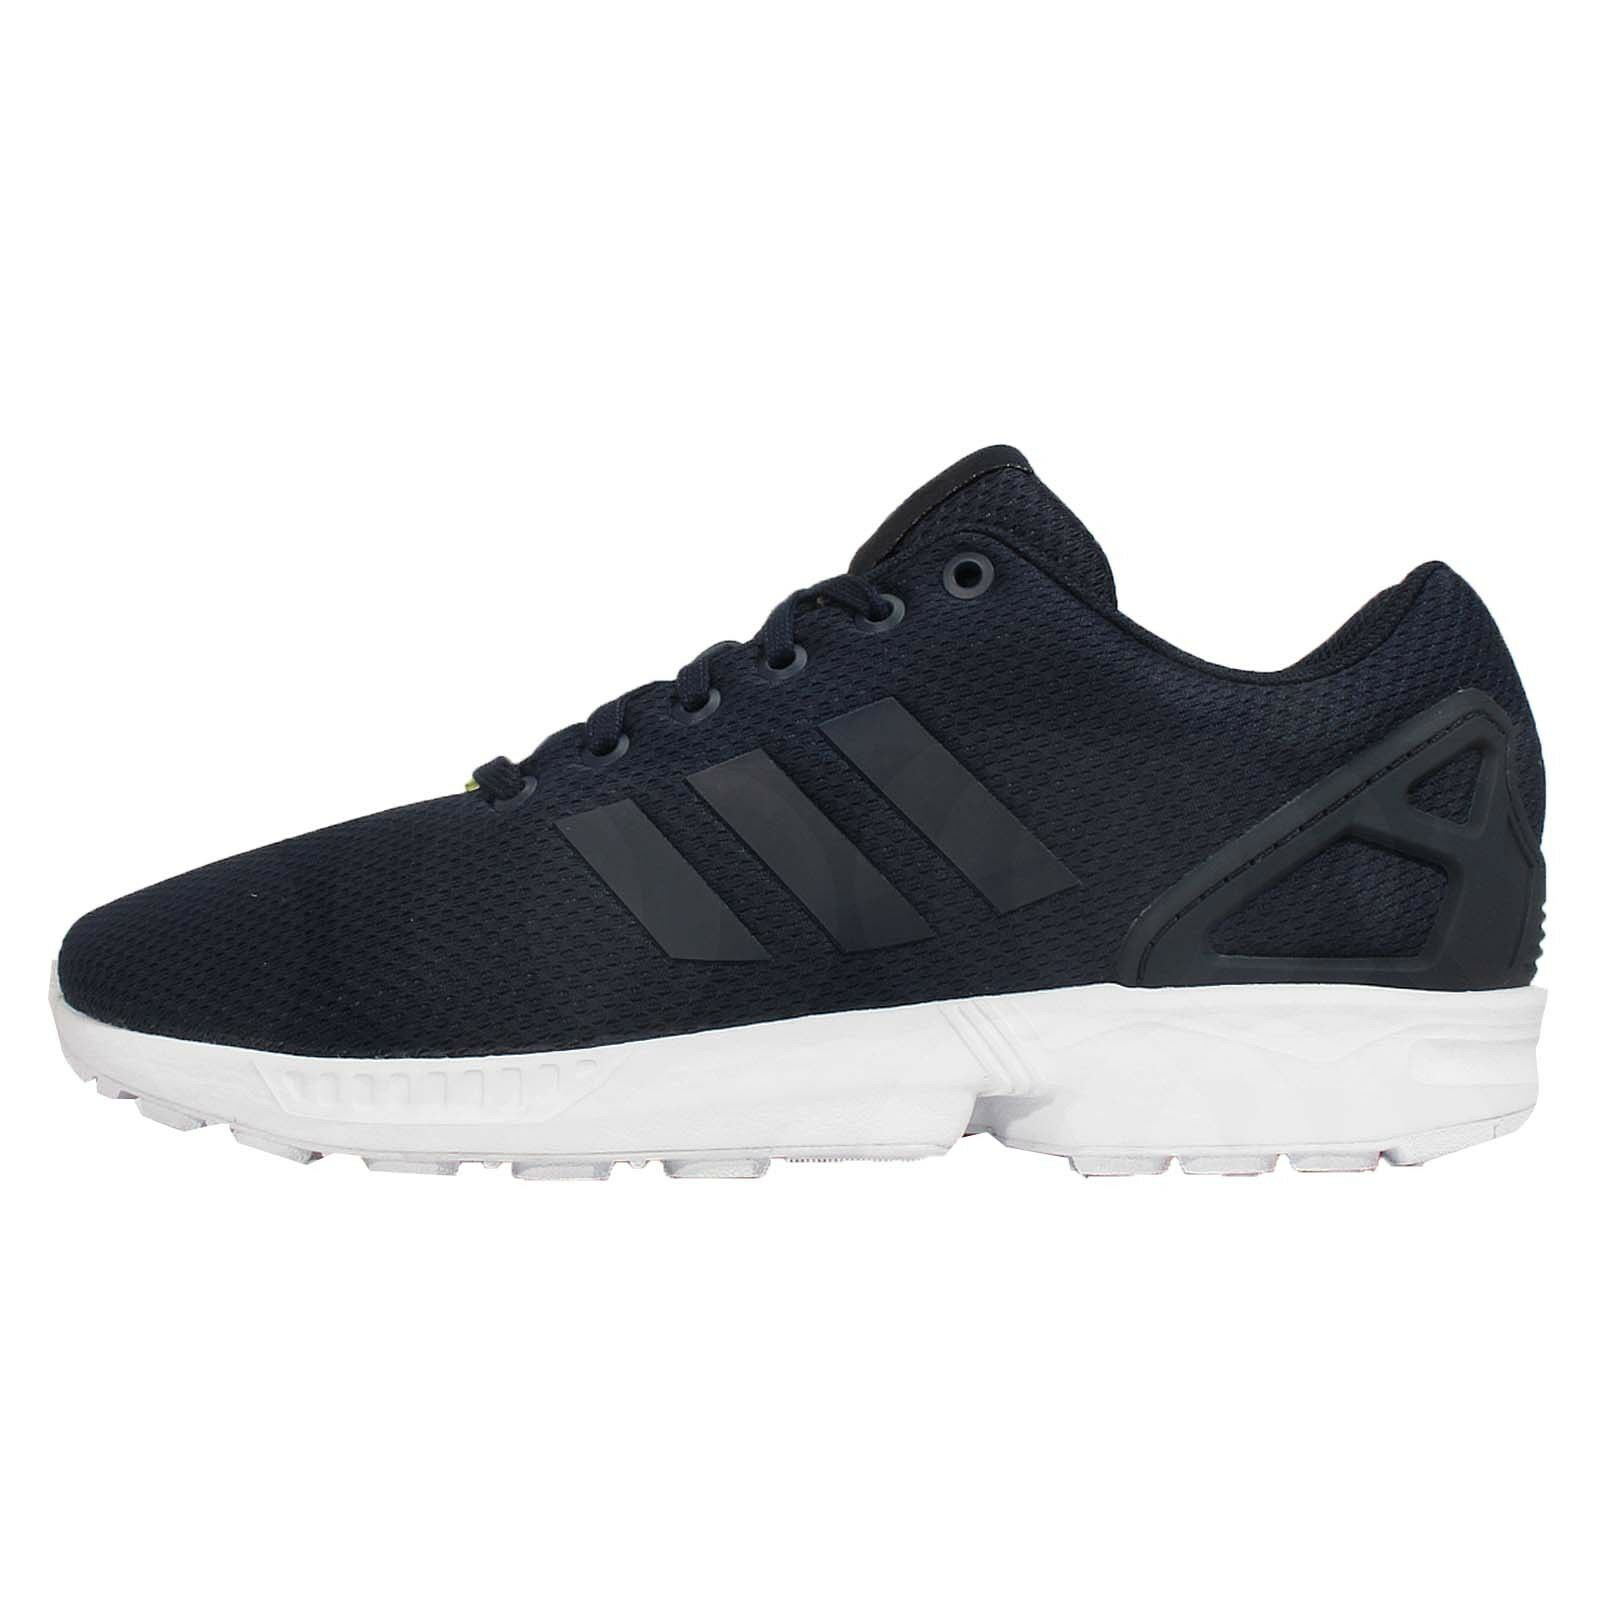 Adidas Originals ZX Flux Navy White Mens Running Shoes Sneakers M19841